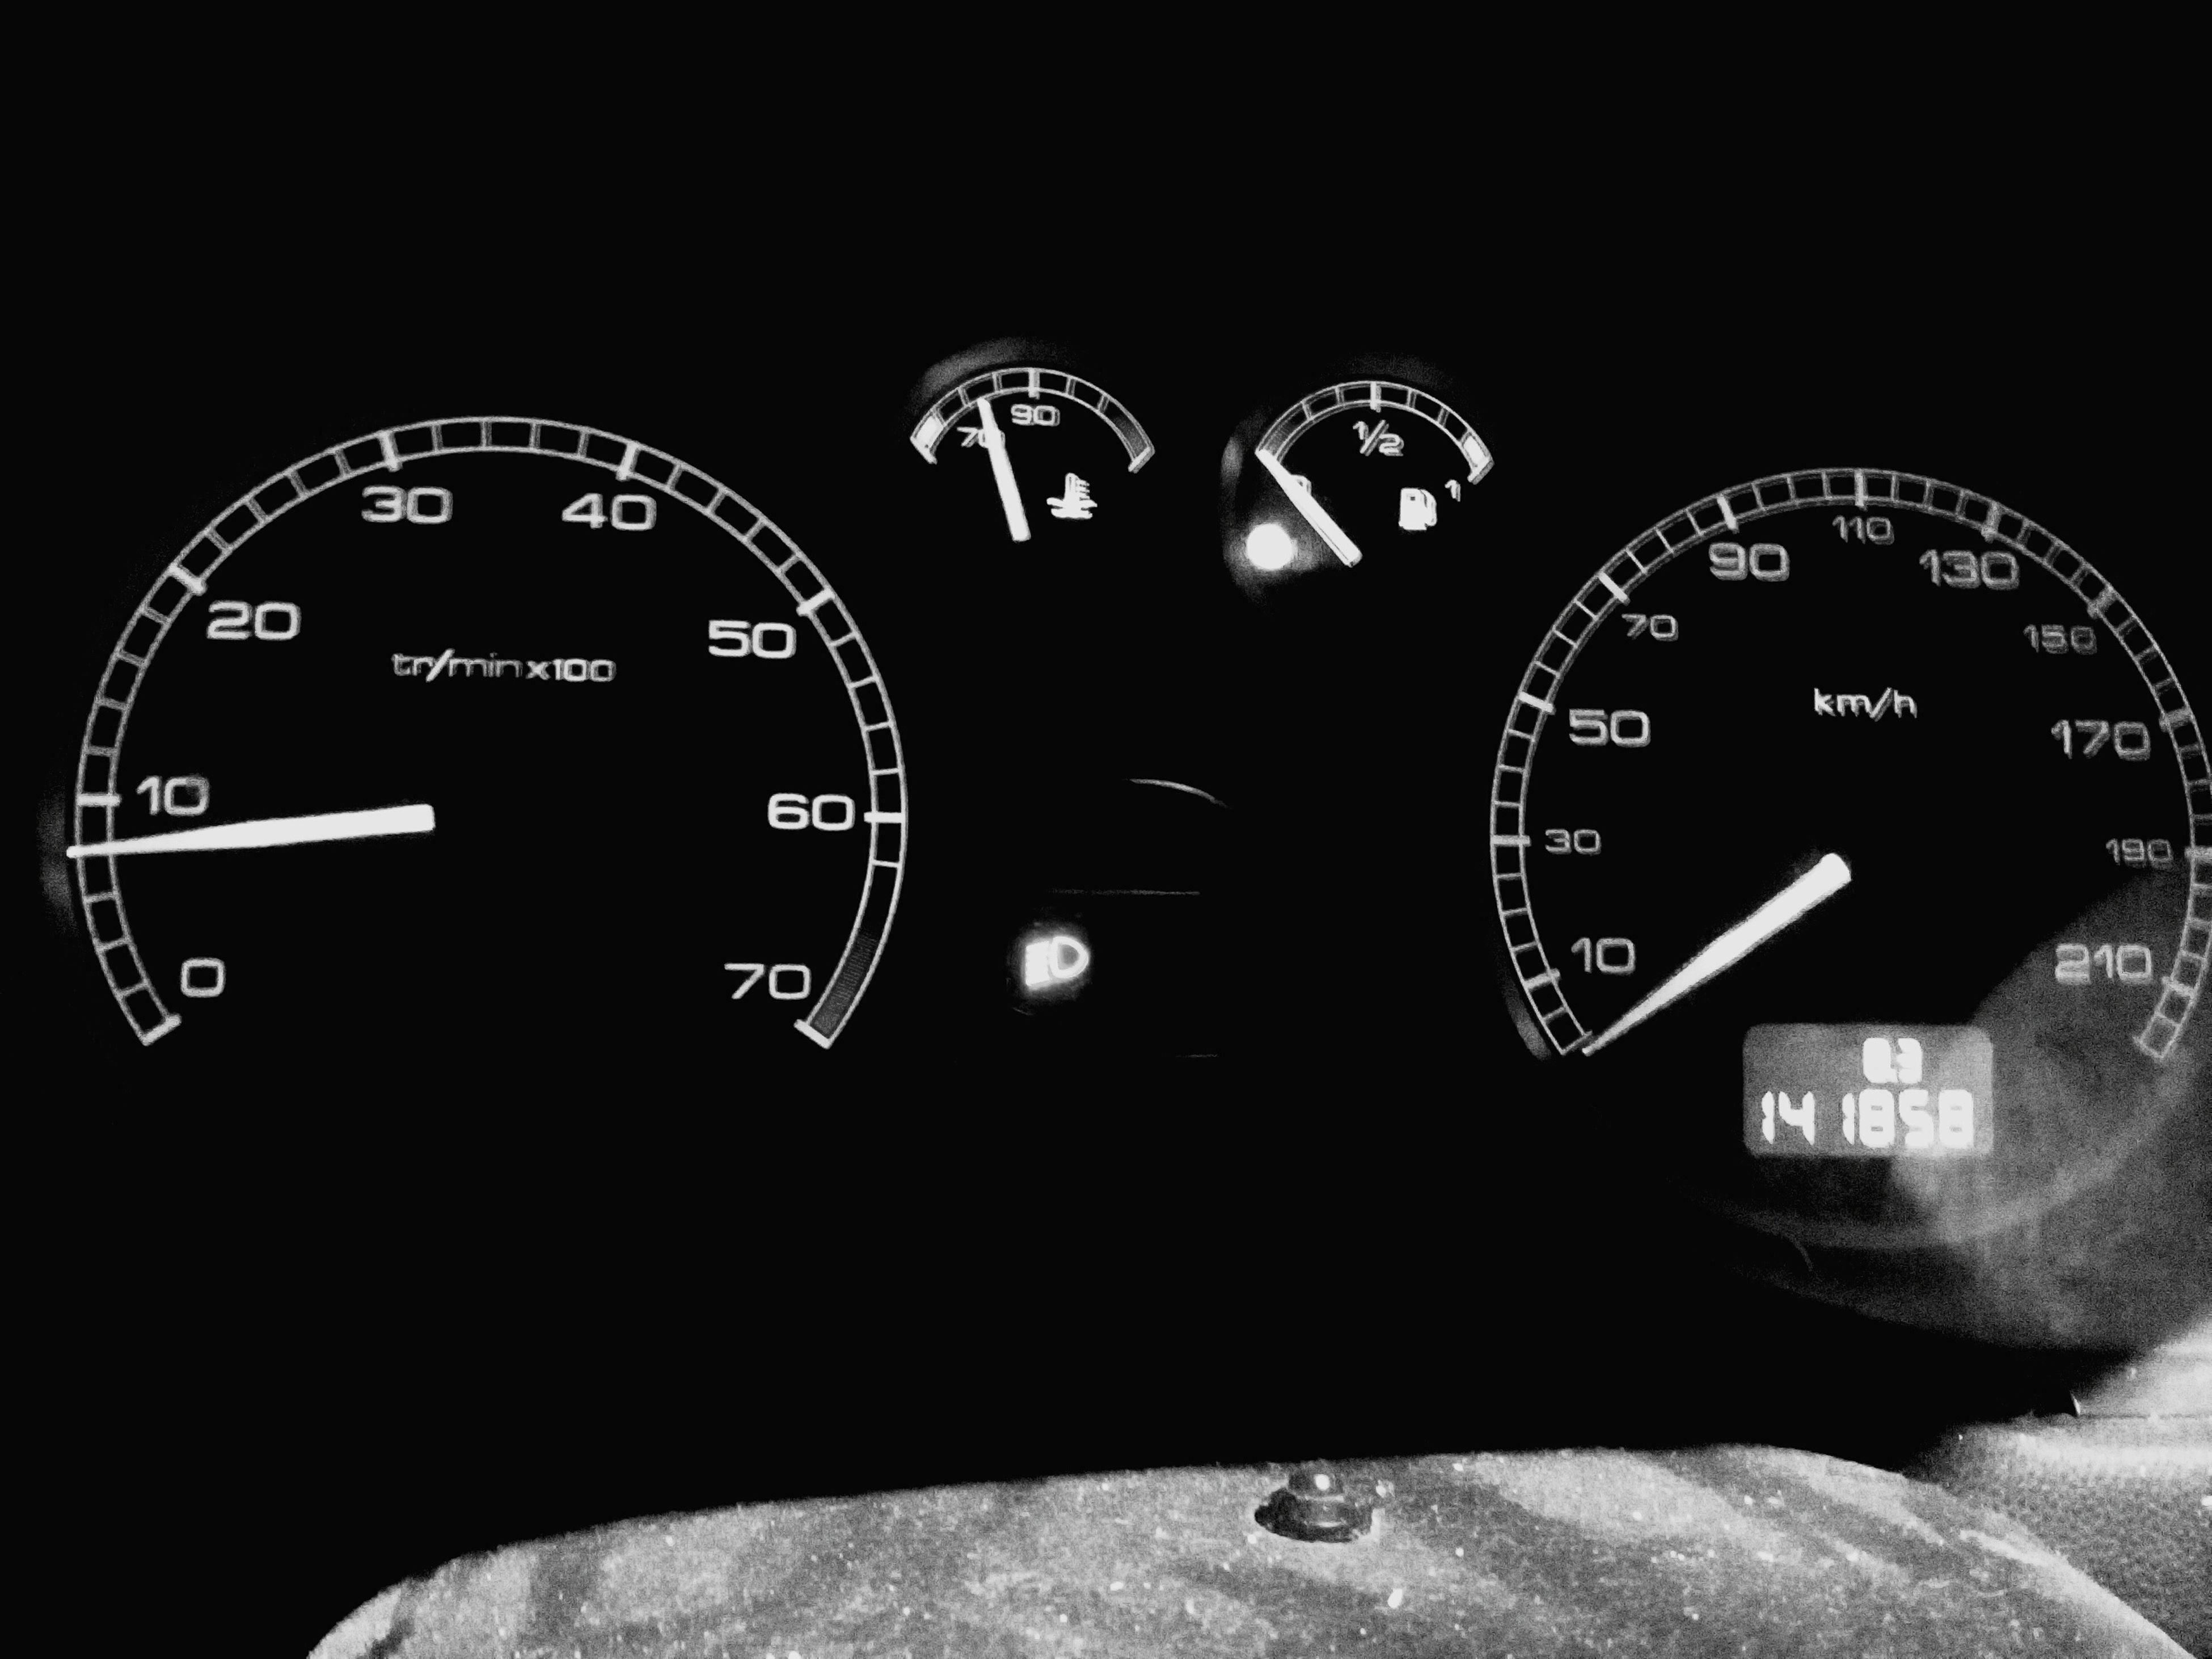 transportation, communication, number, text, clock, technology, speedometer, mode of transport, close-up, time, western script, land vehicle, car, indoors, dashboard, old-fashioned, travel, vehicle interior, car interior, gauge